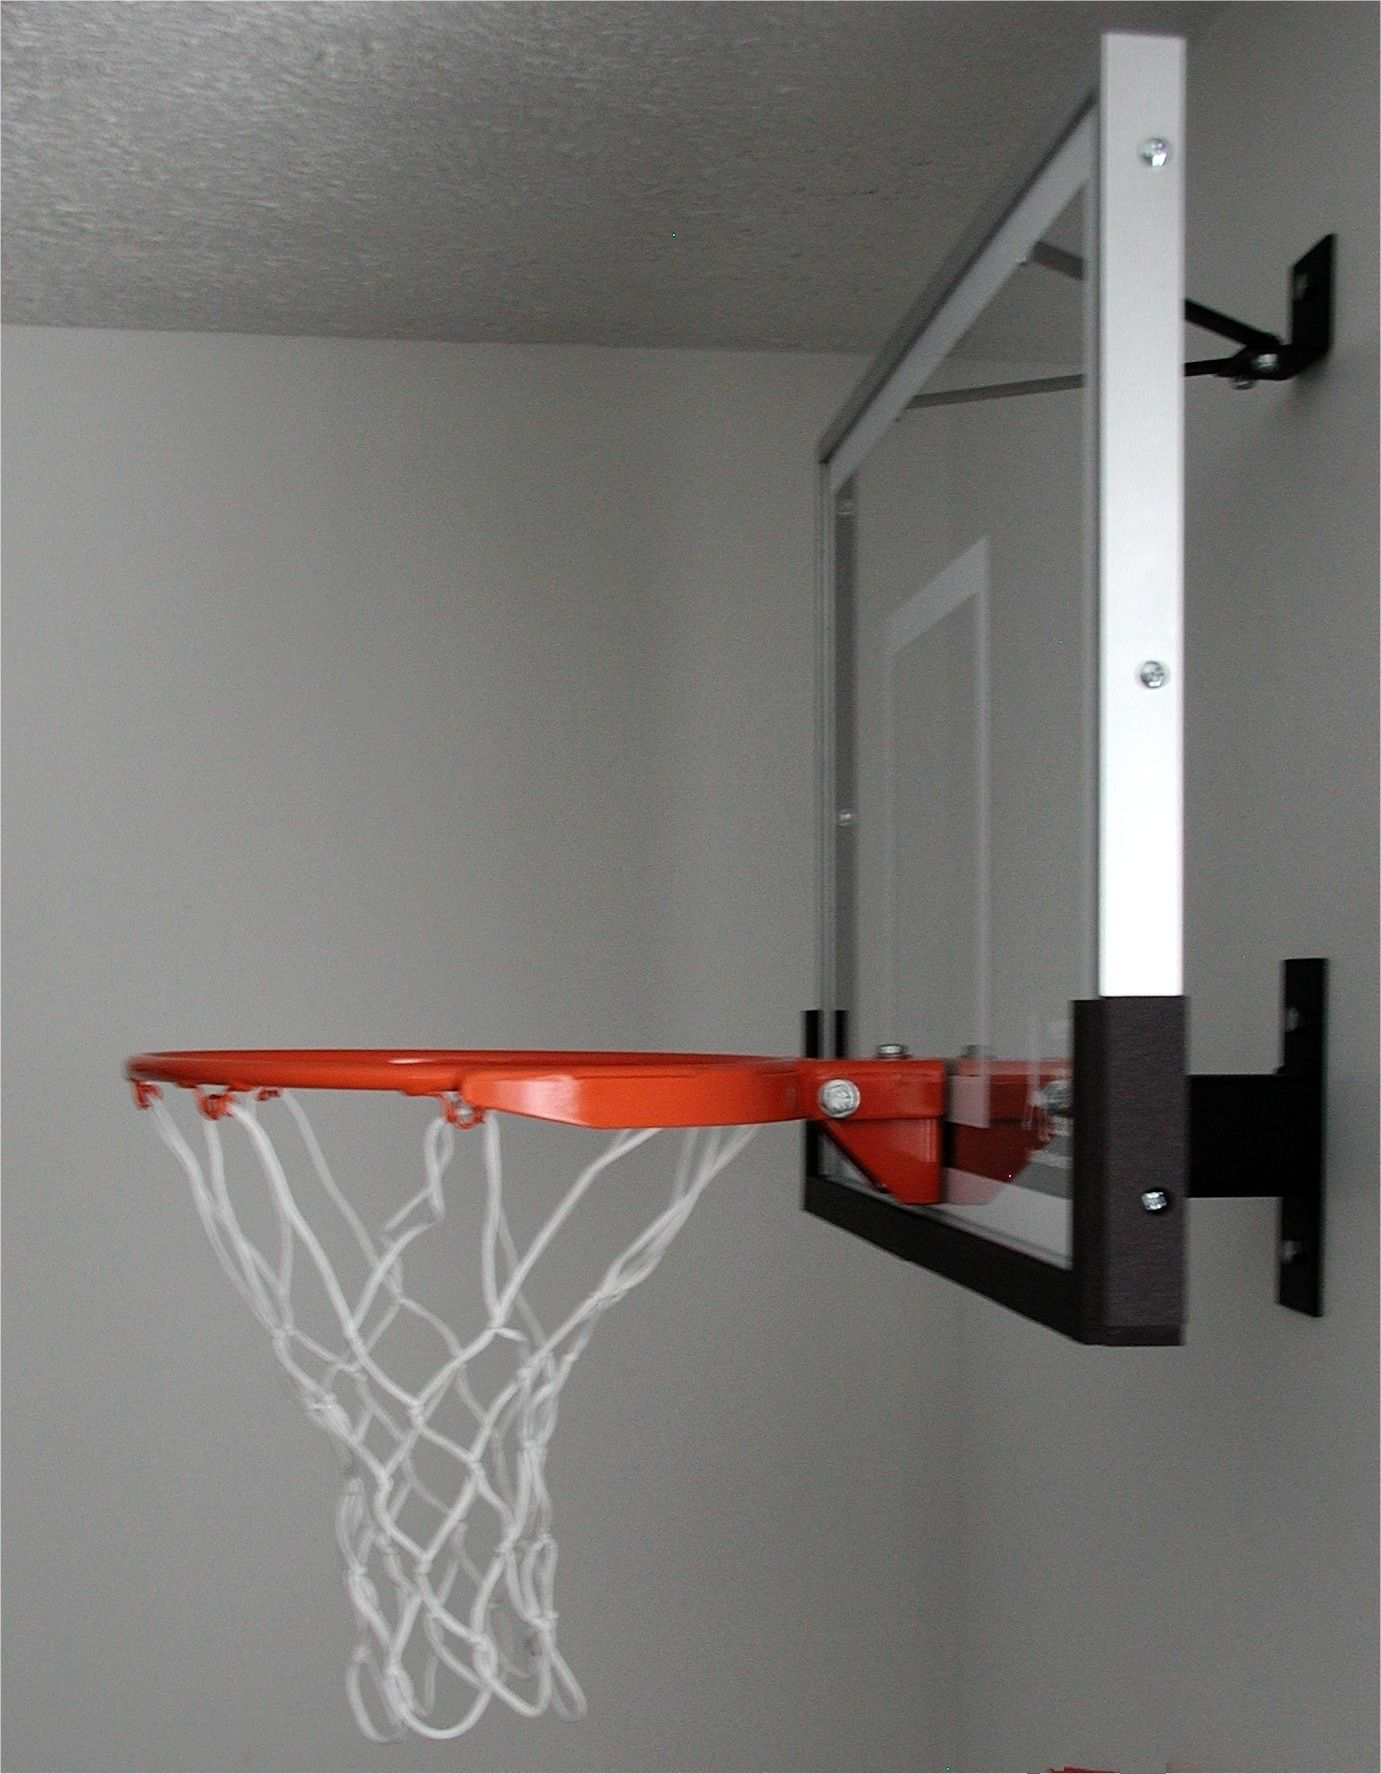 Boys basketball bedroom ideas - Indoor Basketball Hoop With Mini Basketball Mp 2 0